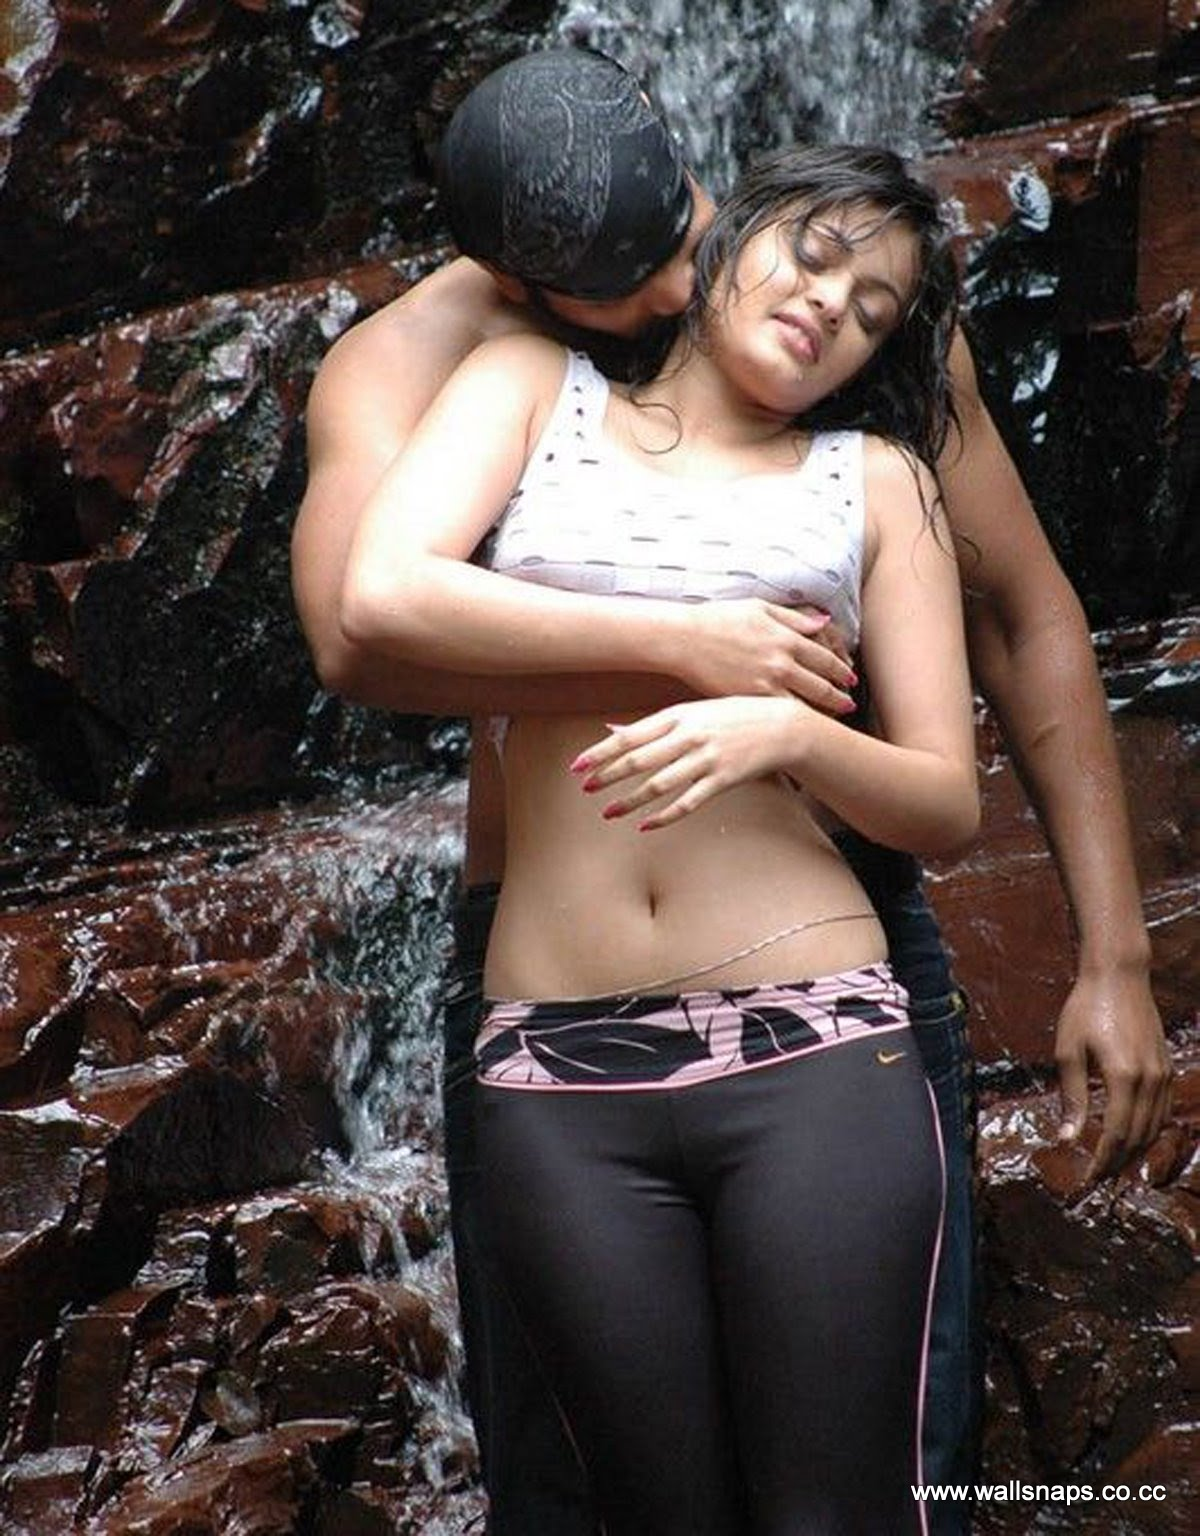 Hot indian actresses kajal agarwal showing their juicy butts and ass show fap challenge 1 - 1 6